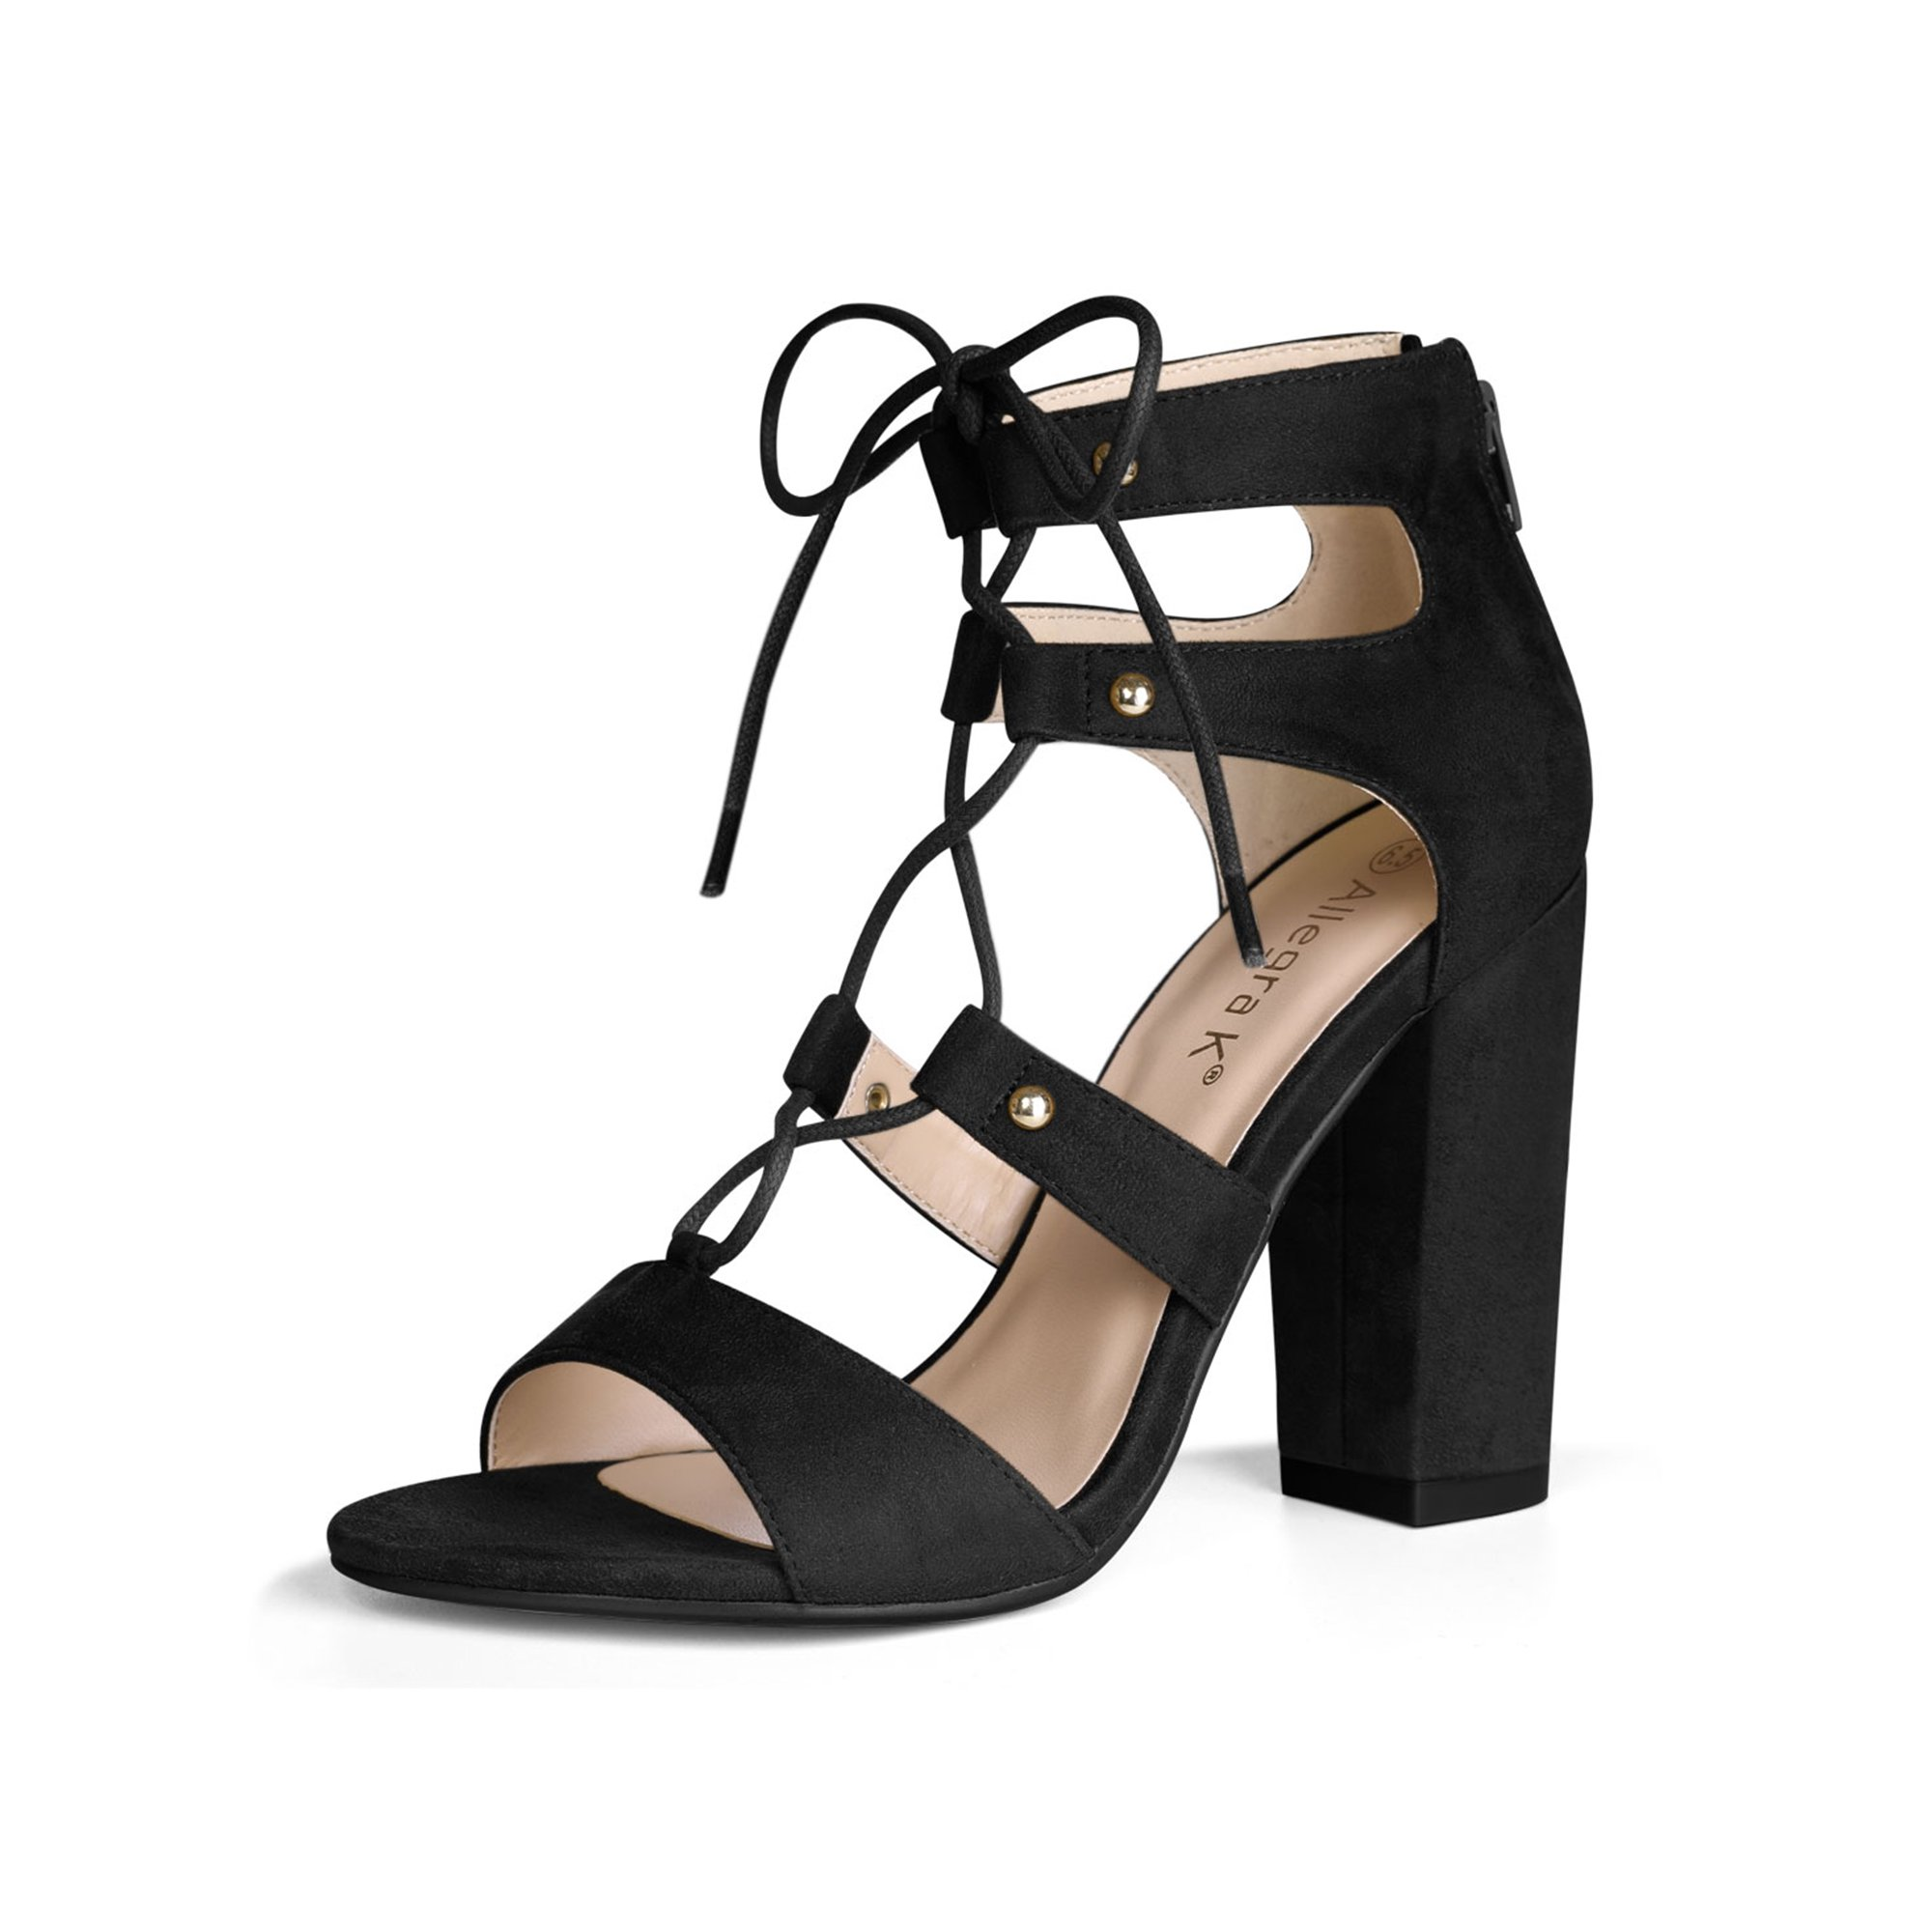 7b2c1599ac0 Unique Bargains Women's Chunky Heel Open Toe Lace Up Gladiator Sandals  Brown (Size 6.5)